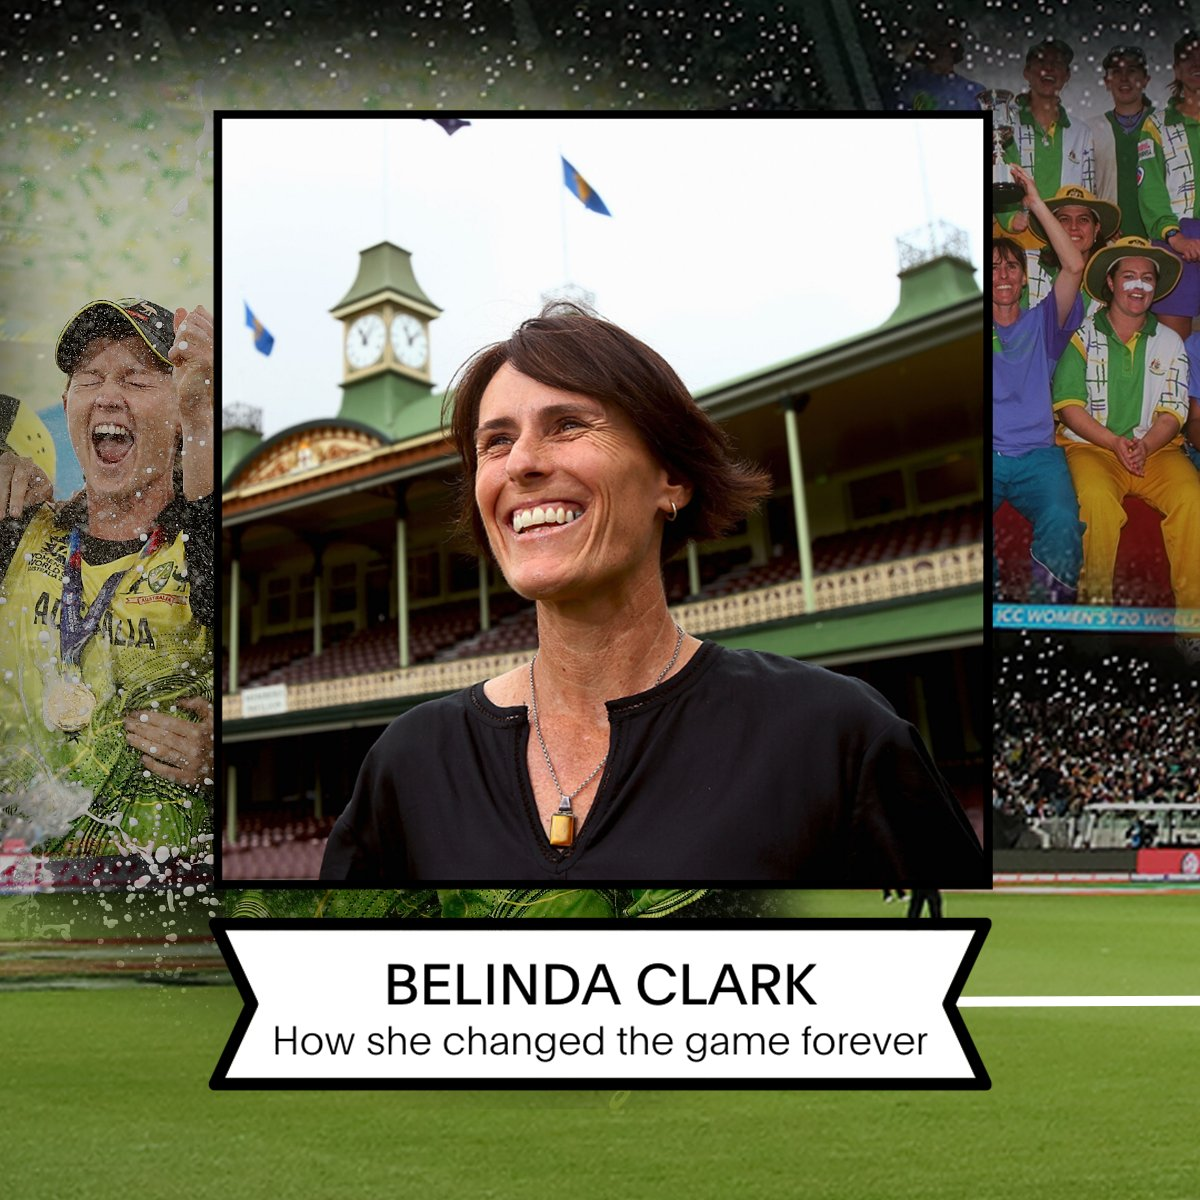 In the lead up to #IWD2021, we're celebrating some of the key figures who challenged the status quo to drive the women's game forward 💪    Who better to start with than the great Belinda Clark! #ChooseToChallenge